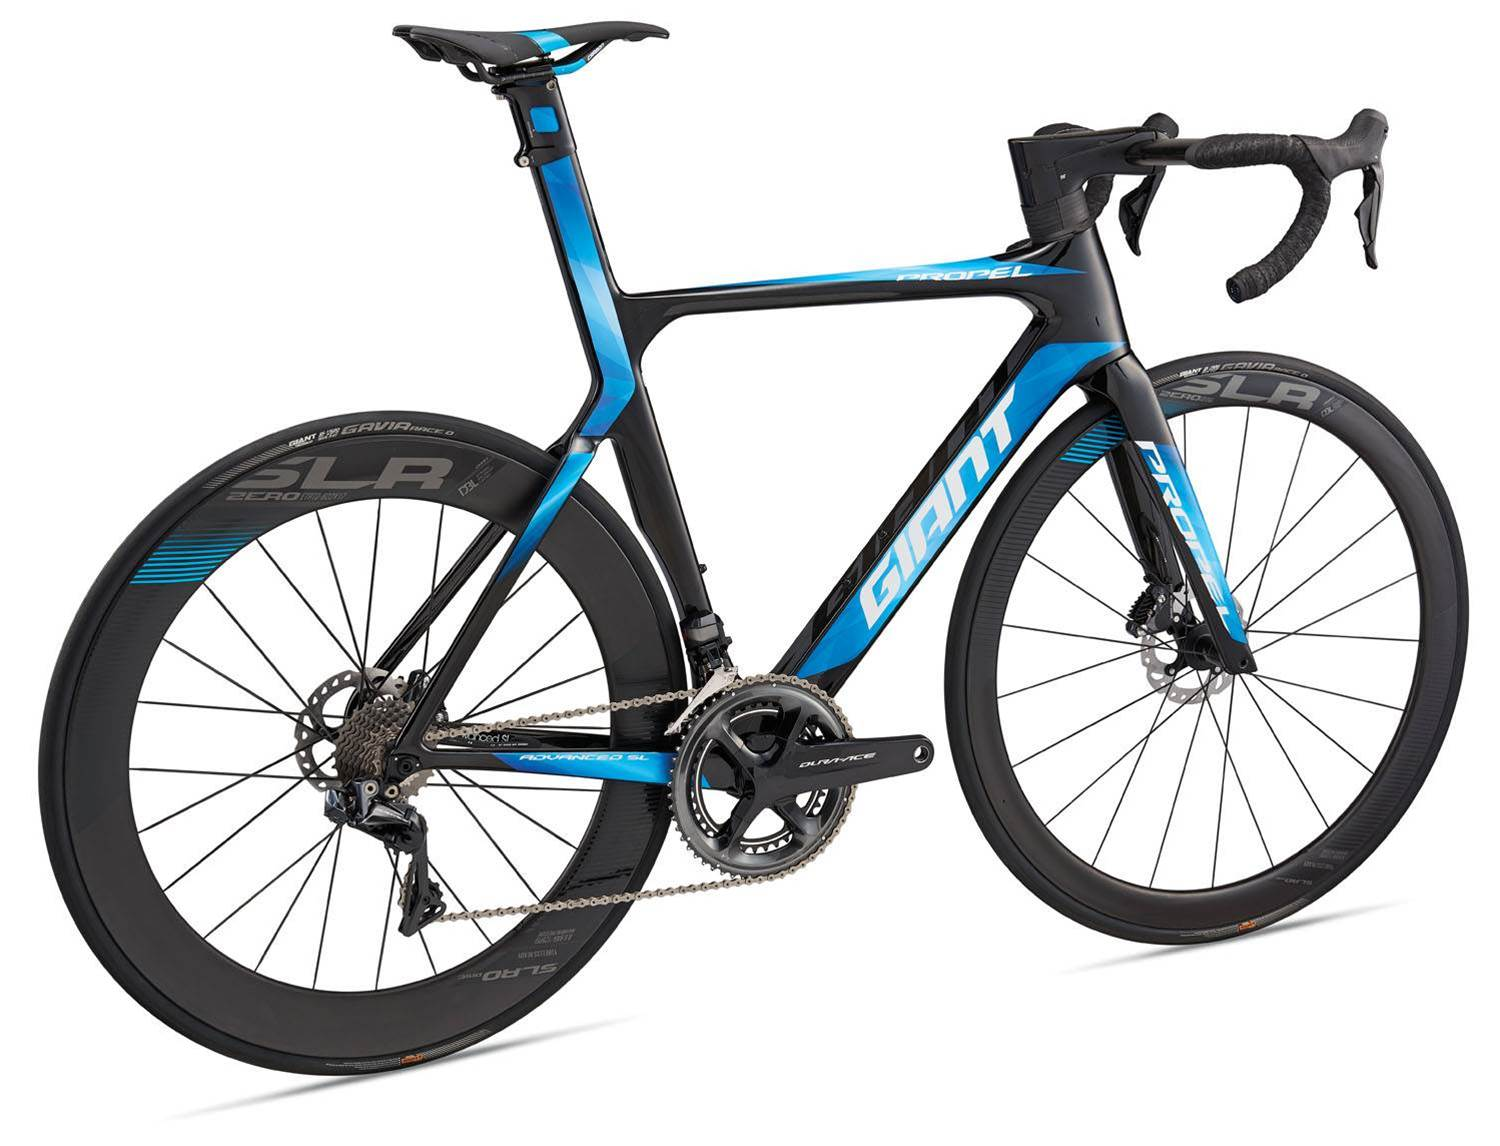 BUYER'S GUIDE: Aero bikes